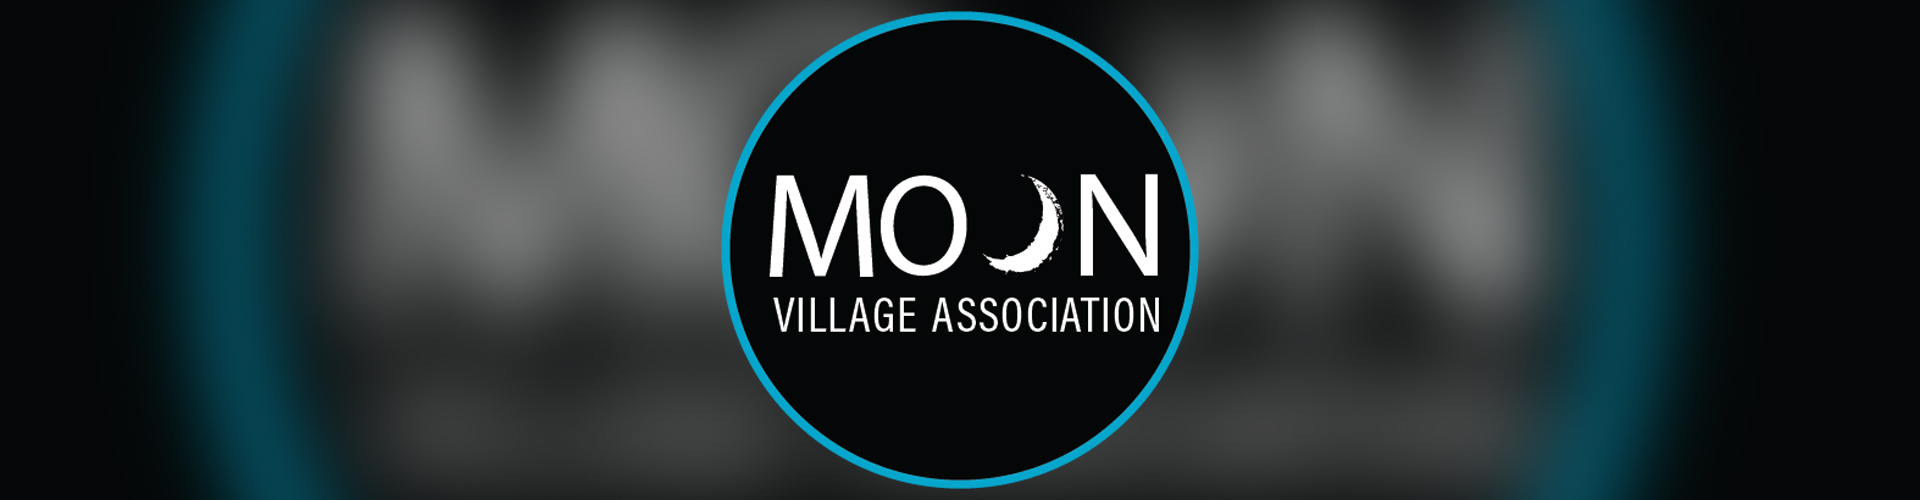 Moon Village Association Newsletter, December 2019 – February 2020